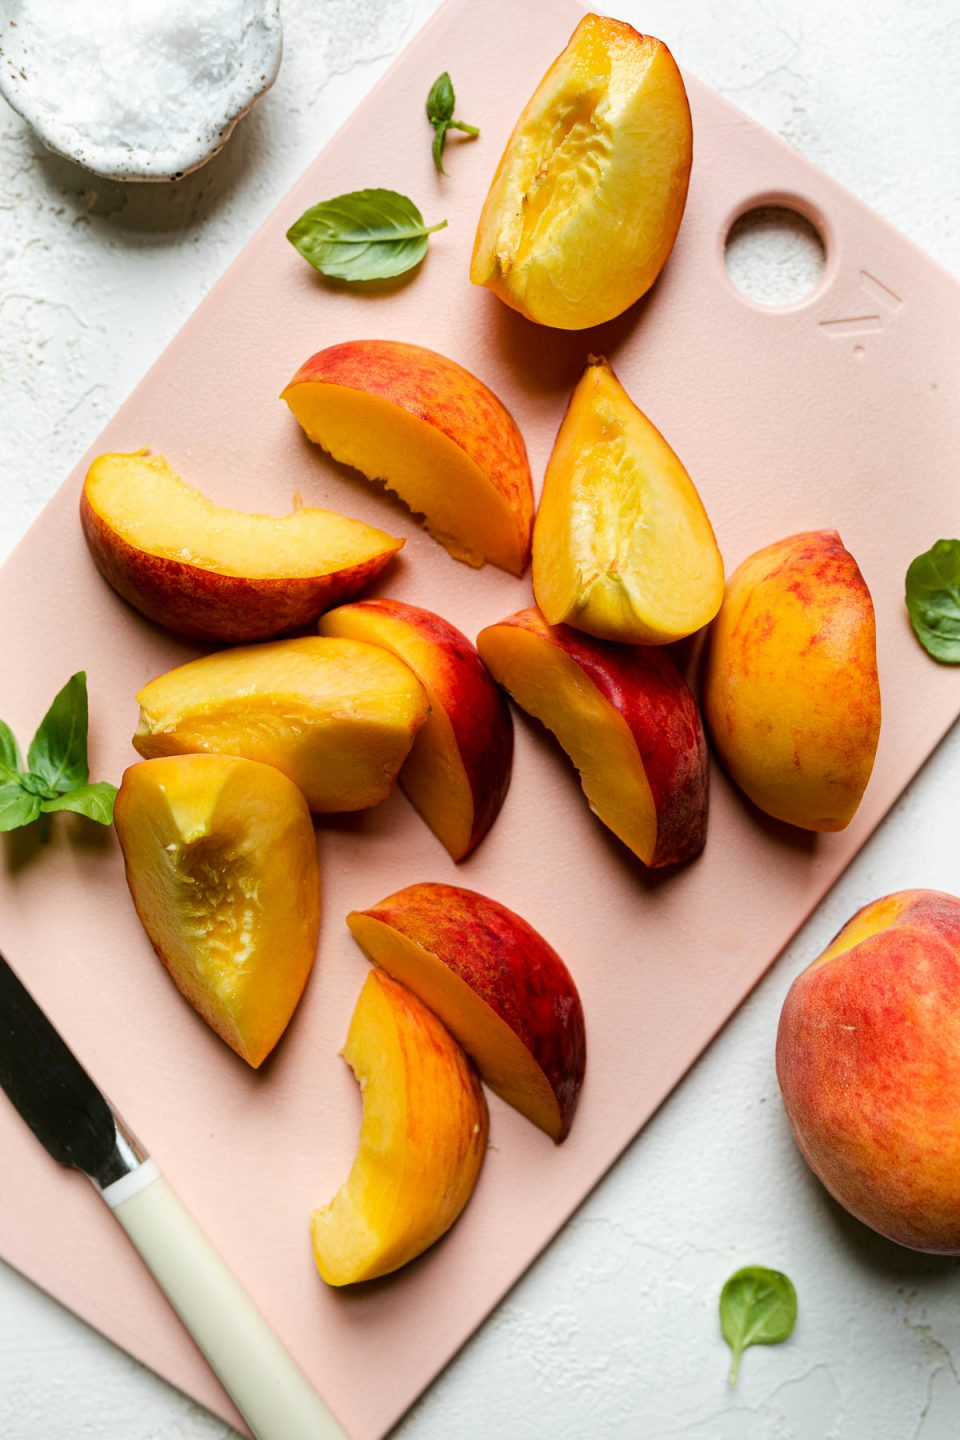 Sliced peaches on pink cutting board atop a textured white surface. The peaches are surrounded by fresh basil leaves, a small bowl of flaky salt, & a small paring knife.